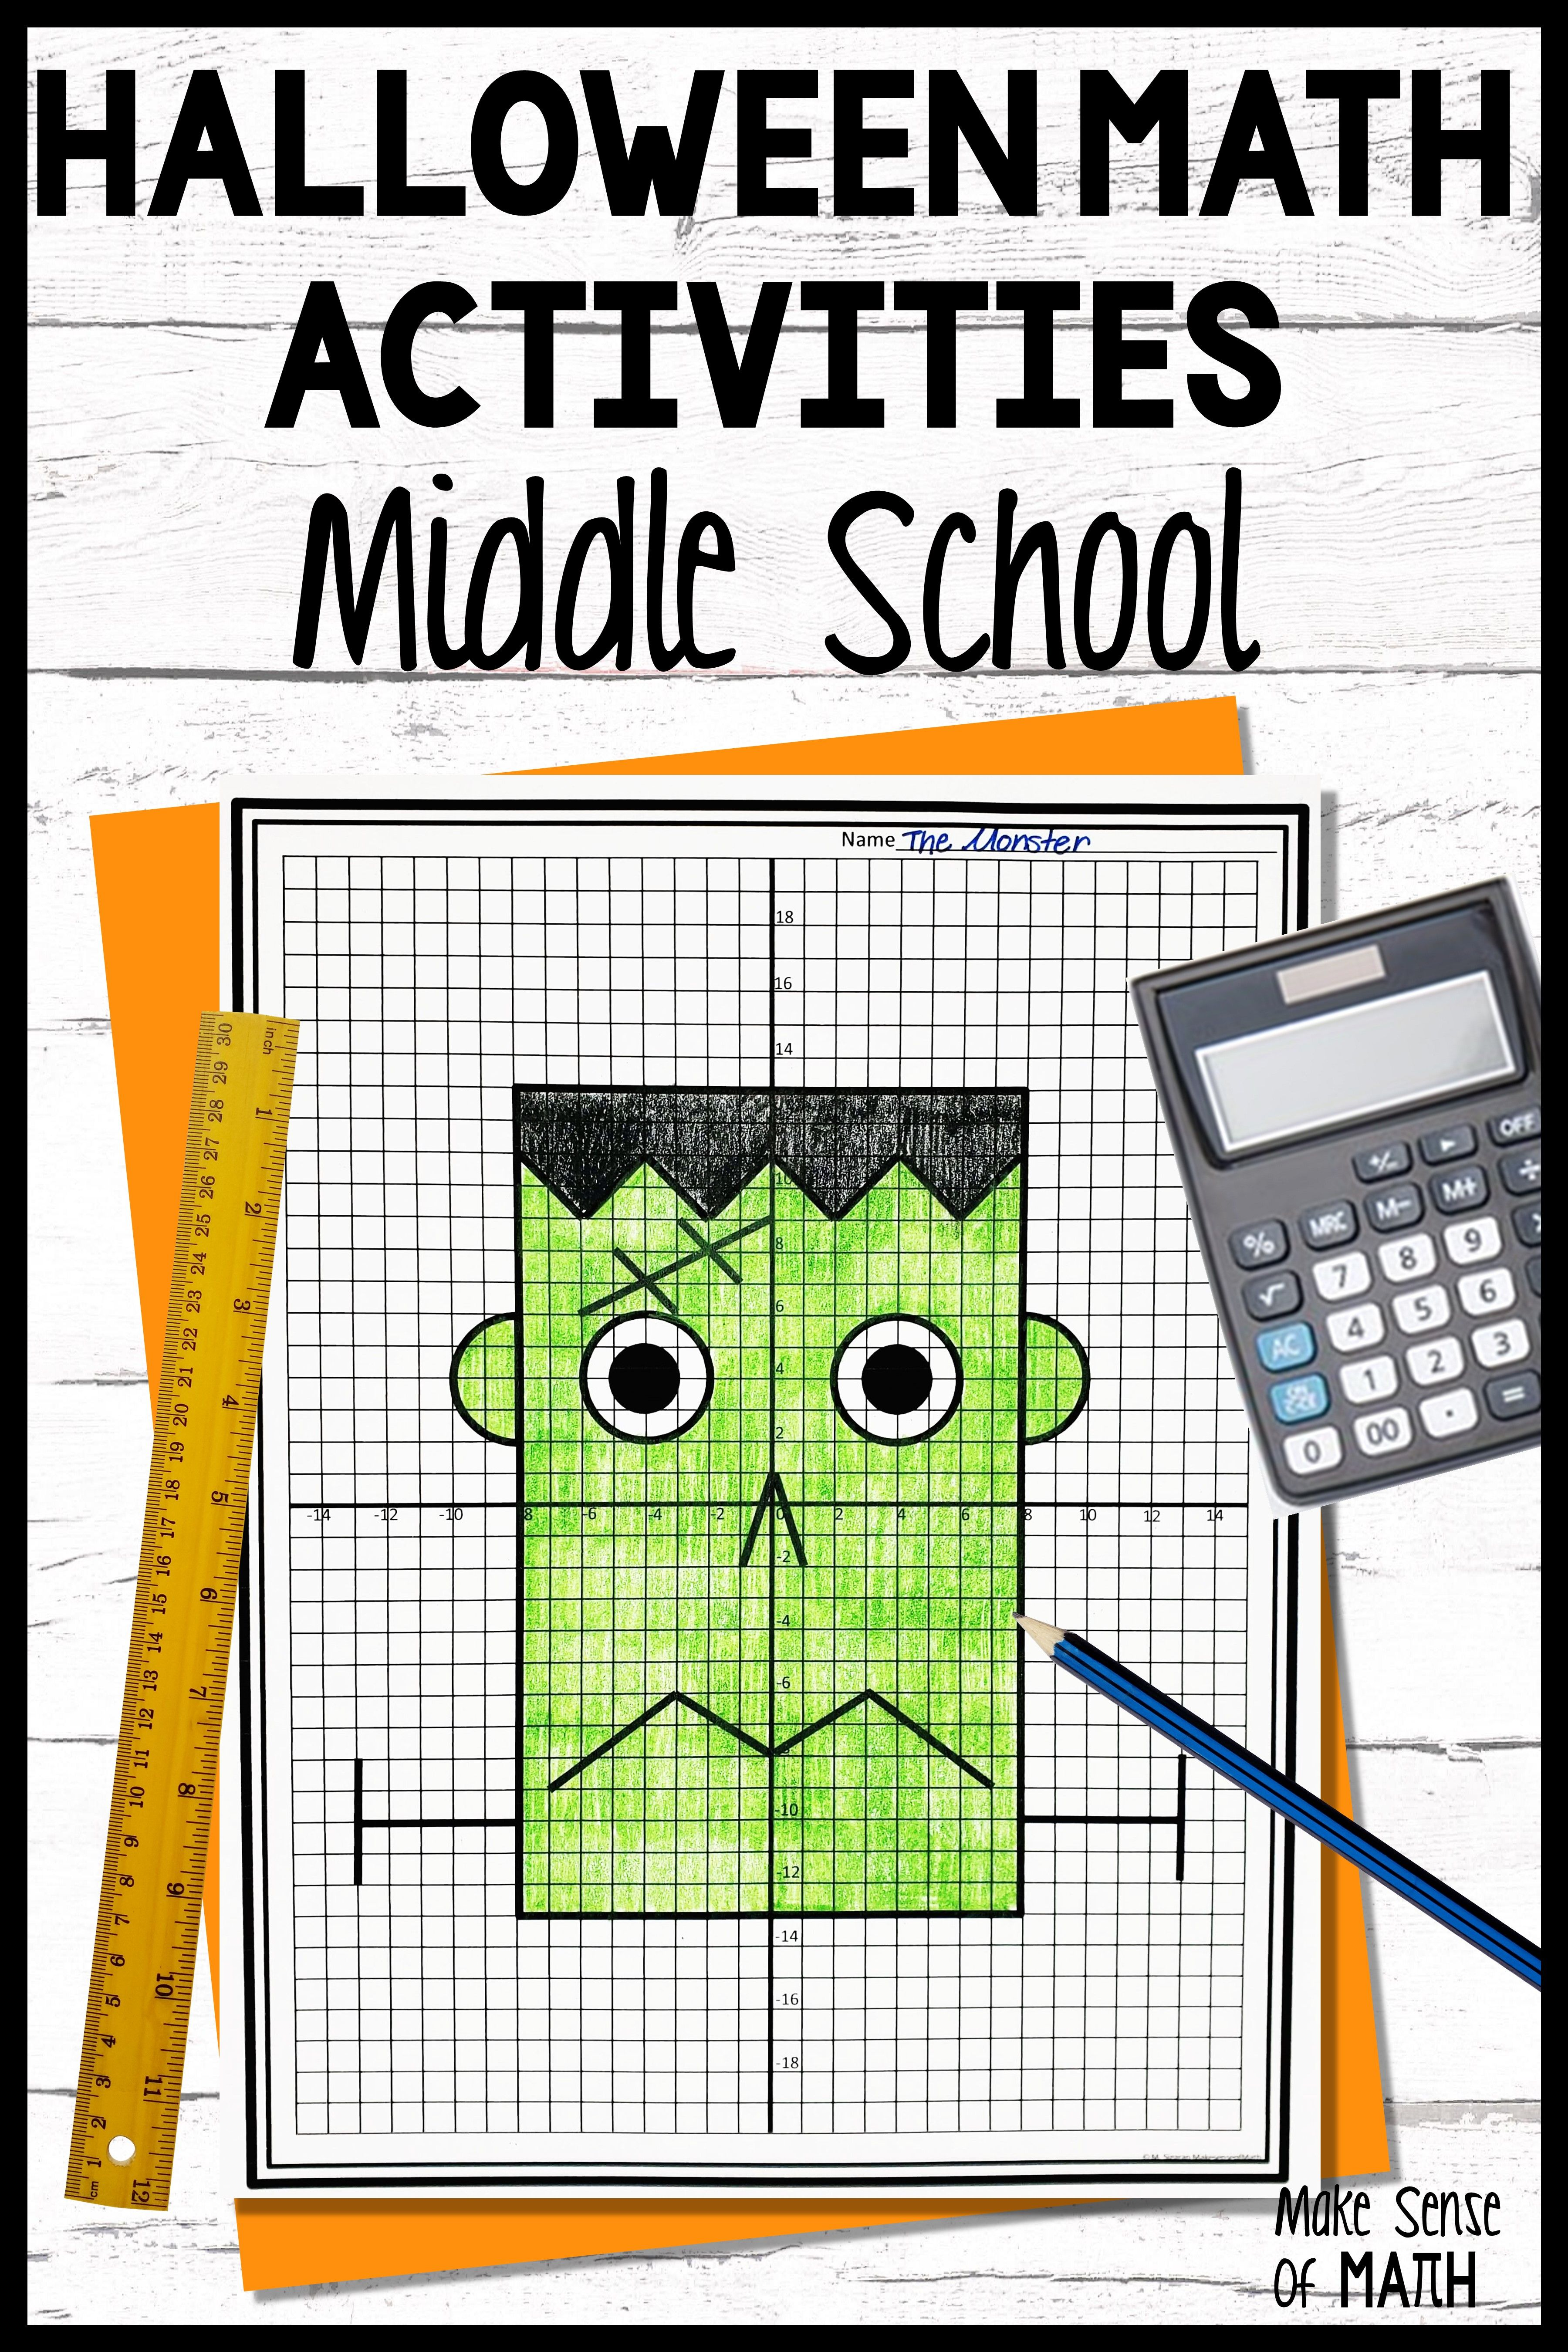 Halloween Math Activities And Worksheets For Middle School Math Halloween Math Activities Maths Activities Middle School Halloween Math Worksheets [ 5400 x 3600 Pixel ]